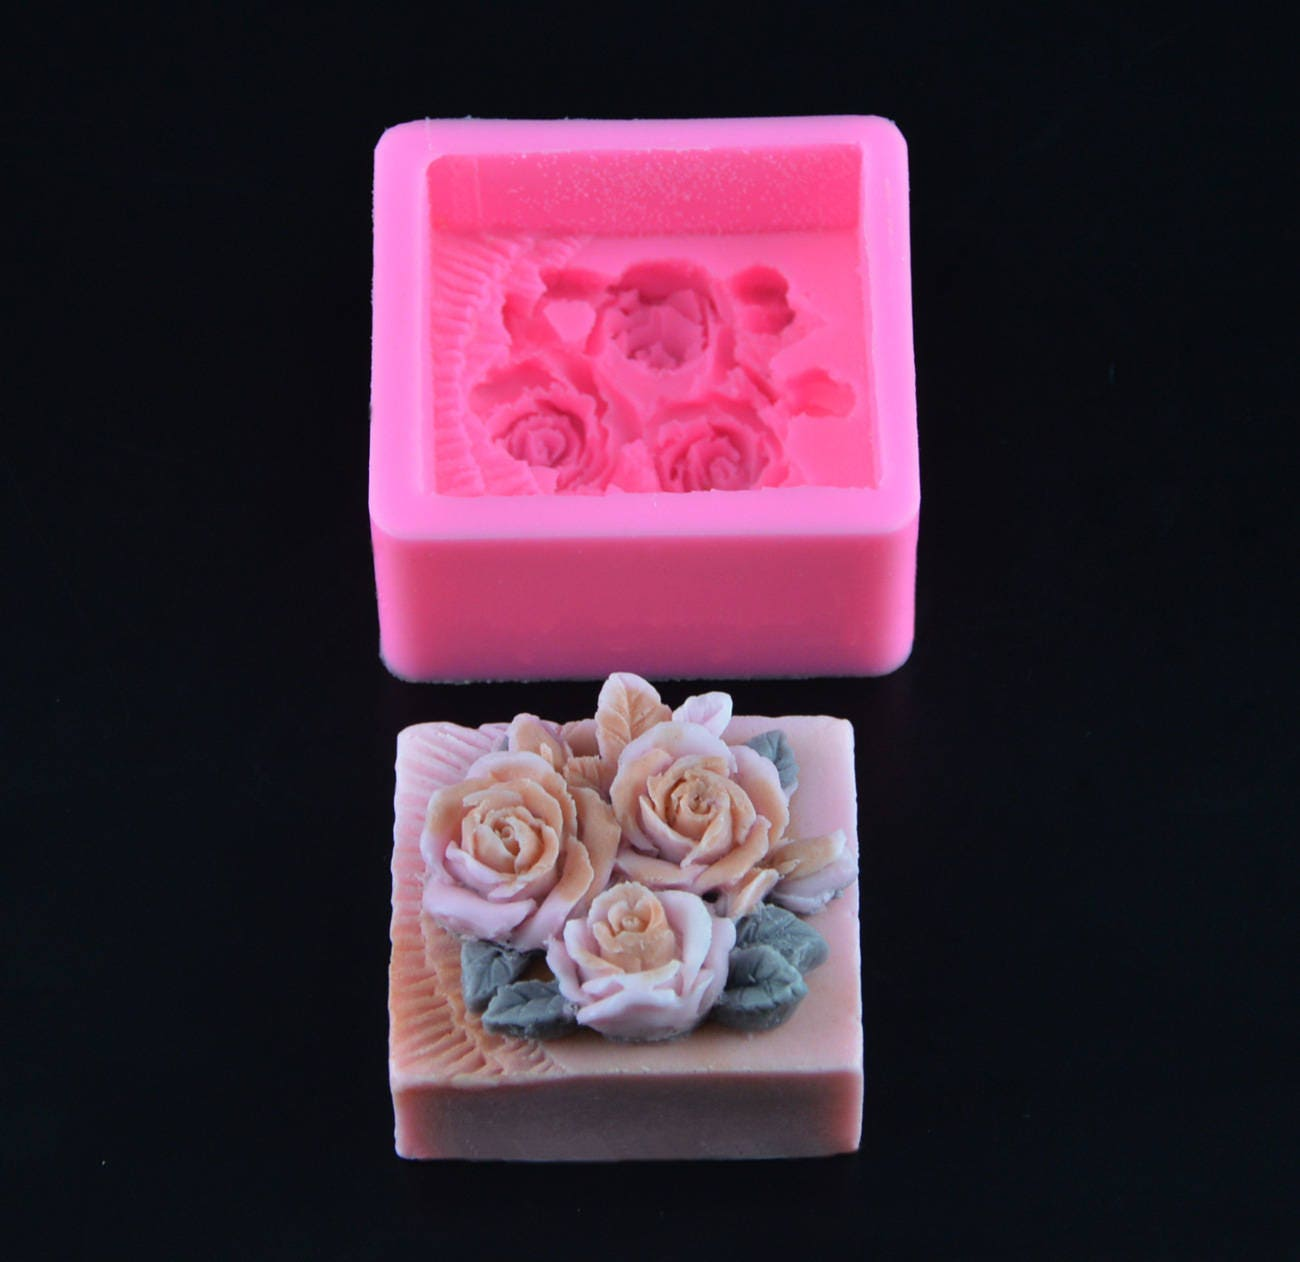 3D Floral Rose Soap Silicone Mold - Fondant Cake Decorating Tools ...